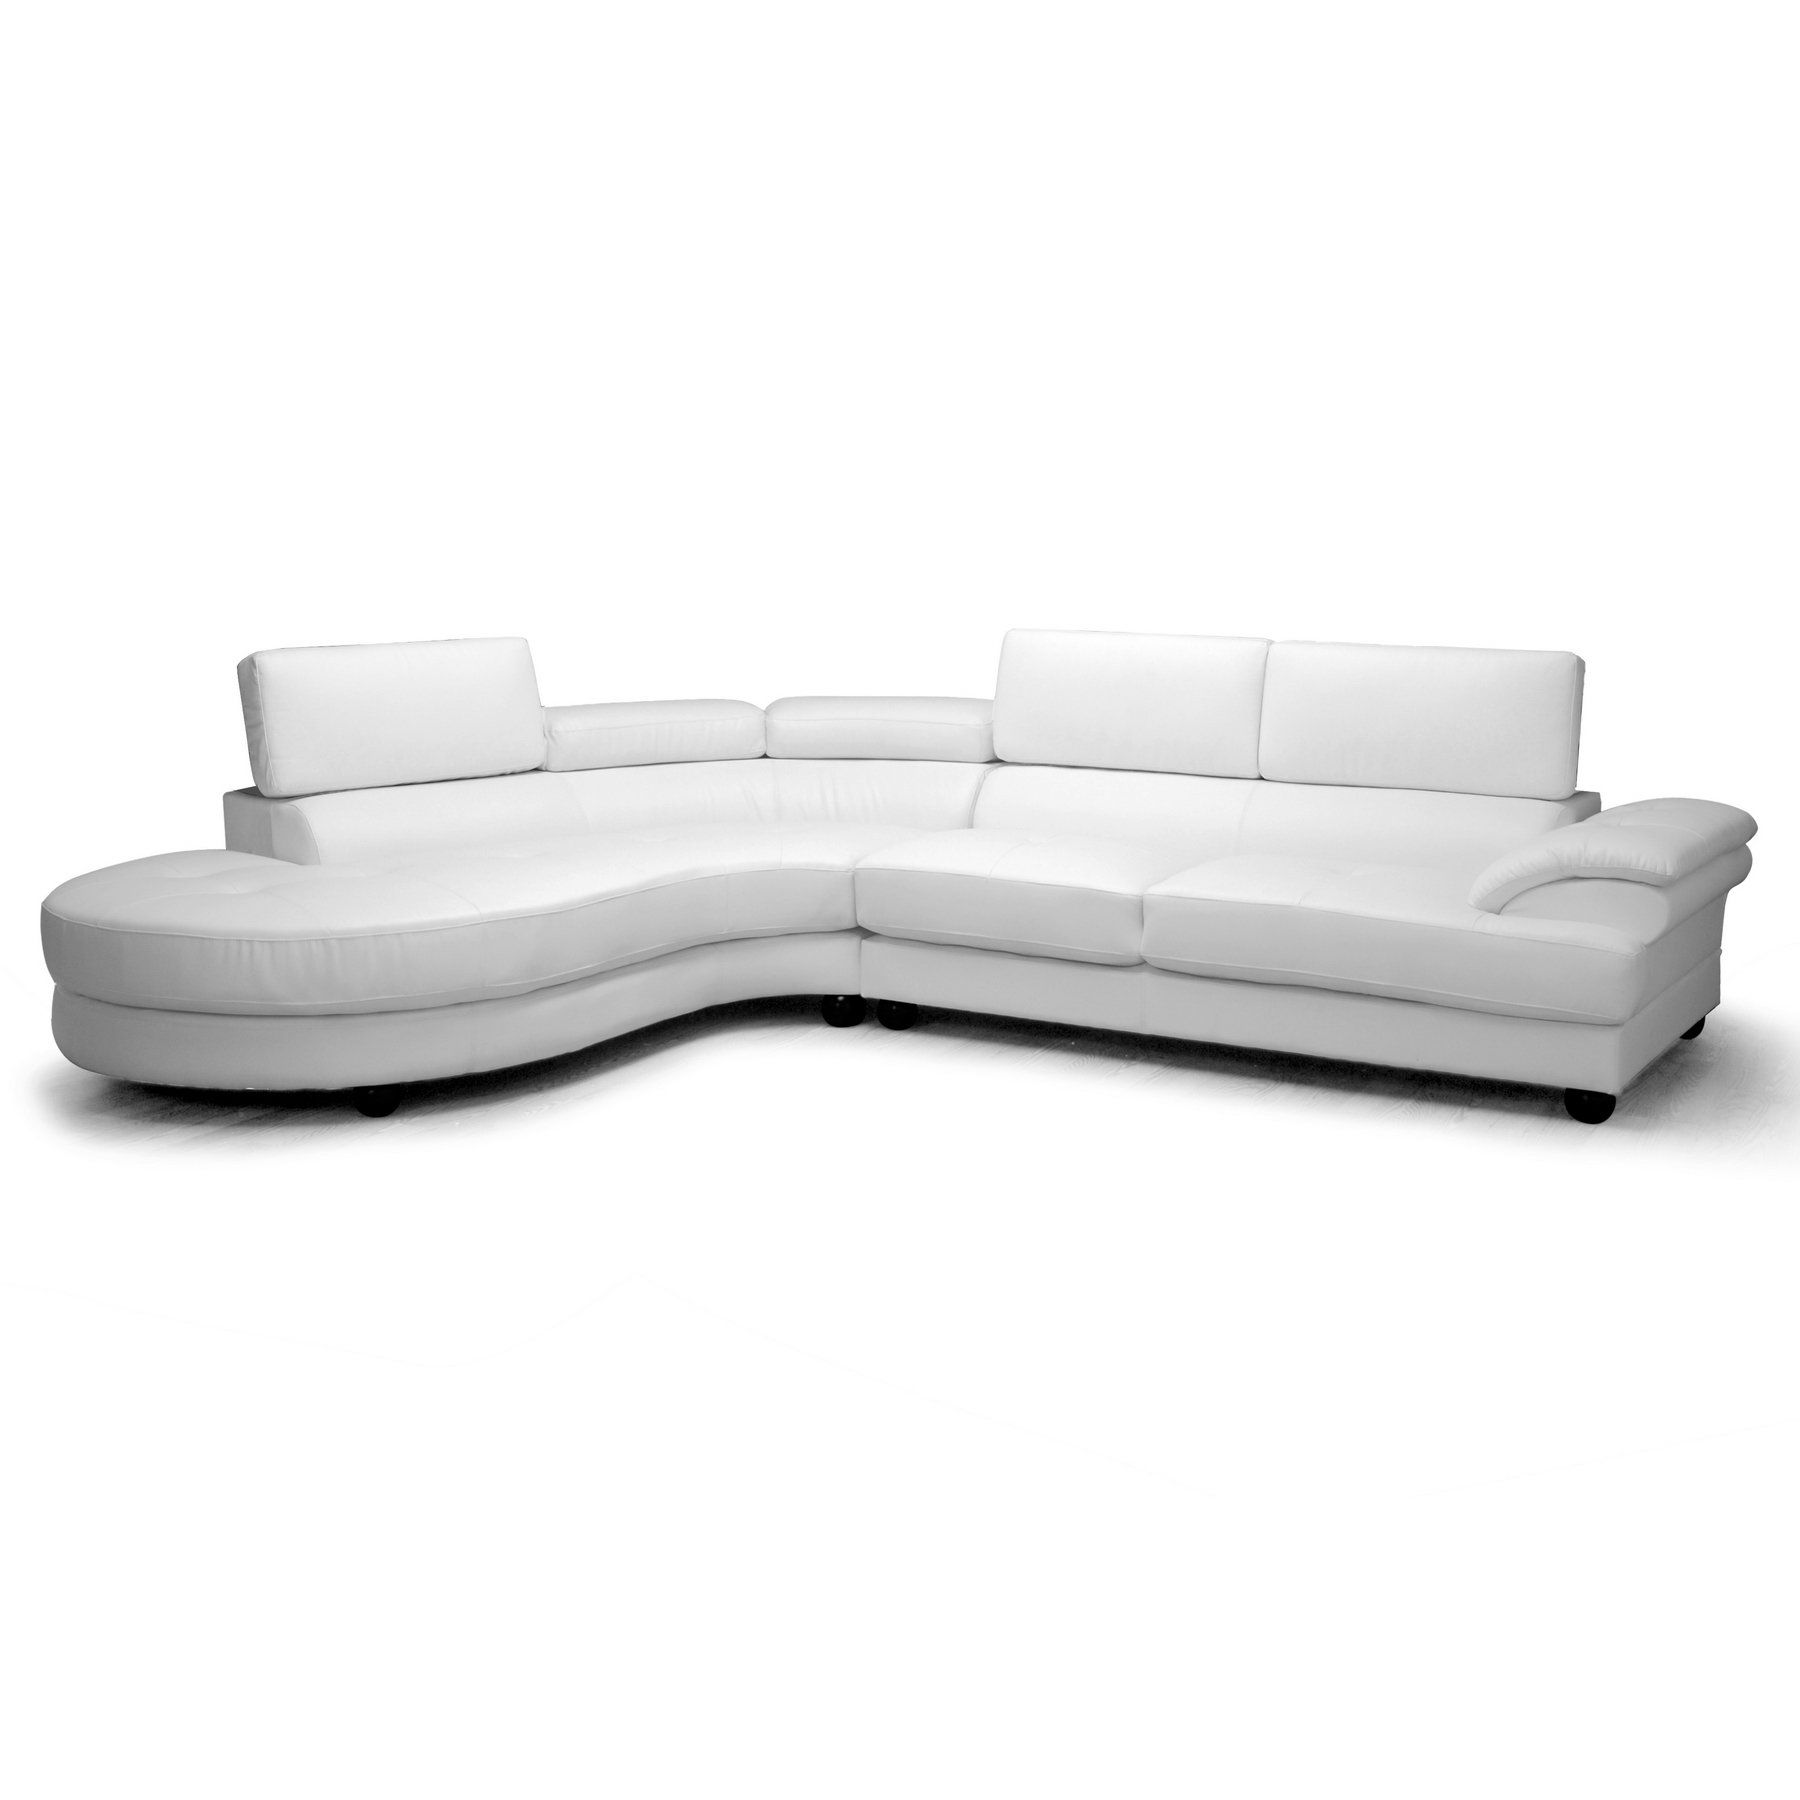 Adelaide White Leather Modern Sectional Sofa by Baxton Studio